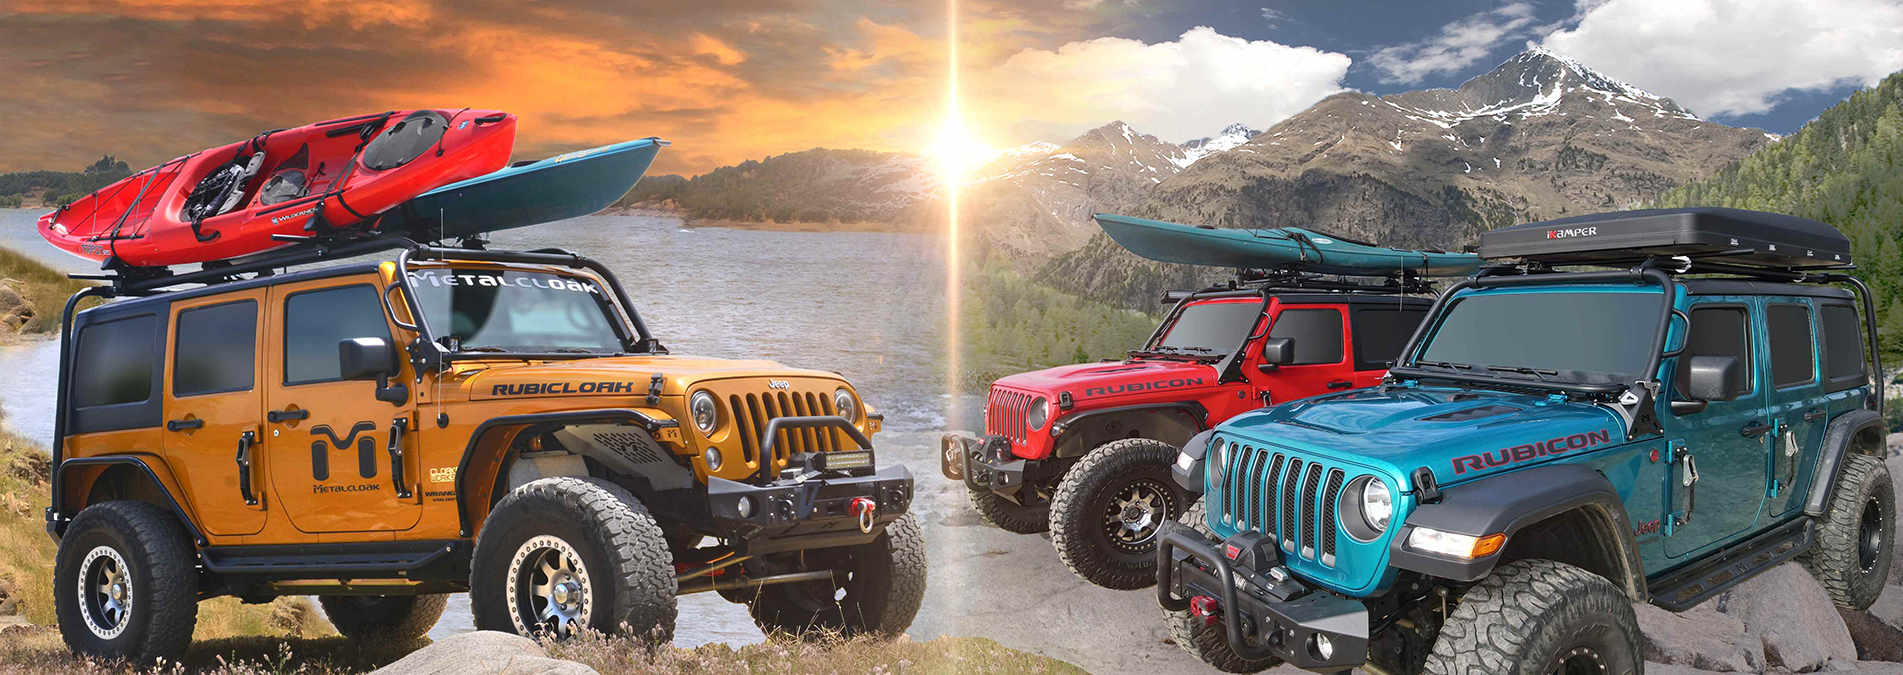 jeeps by a lake with kayaks and roof racks